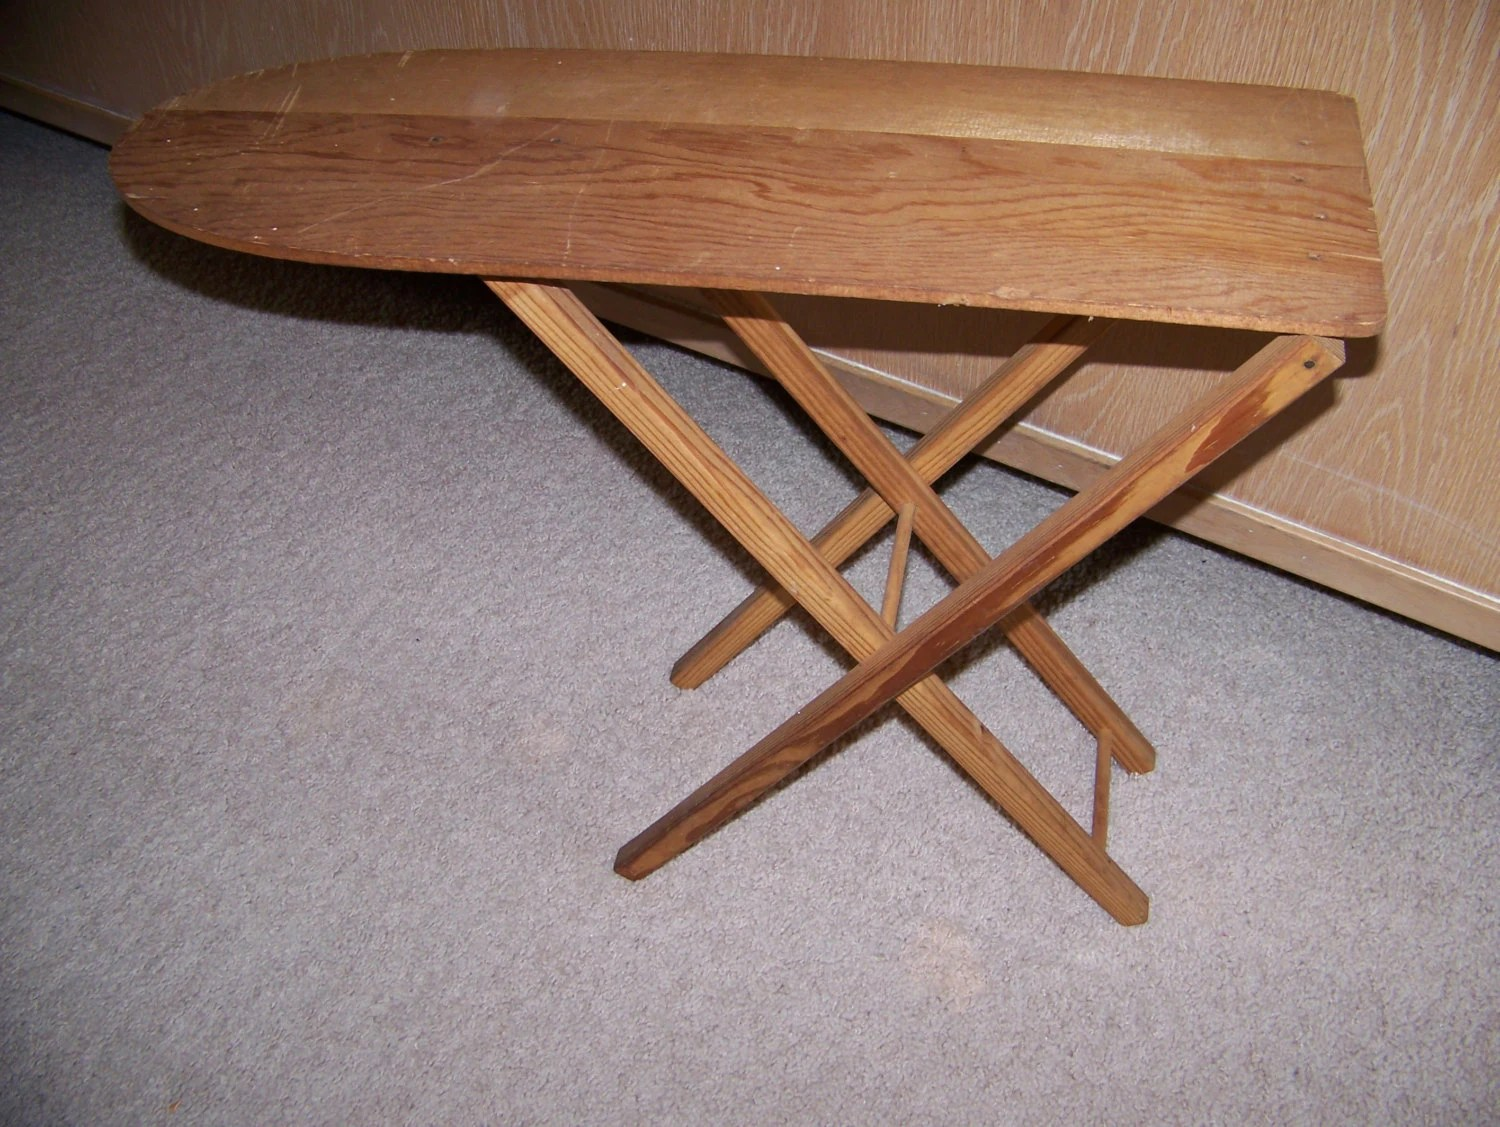 chair step stool ironing board fold up bed woodworking plans with simple inspiration